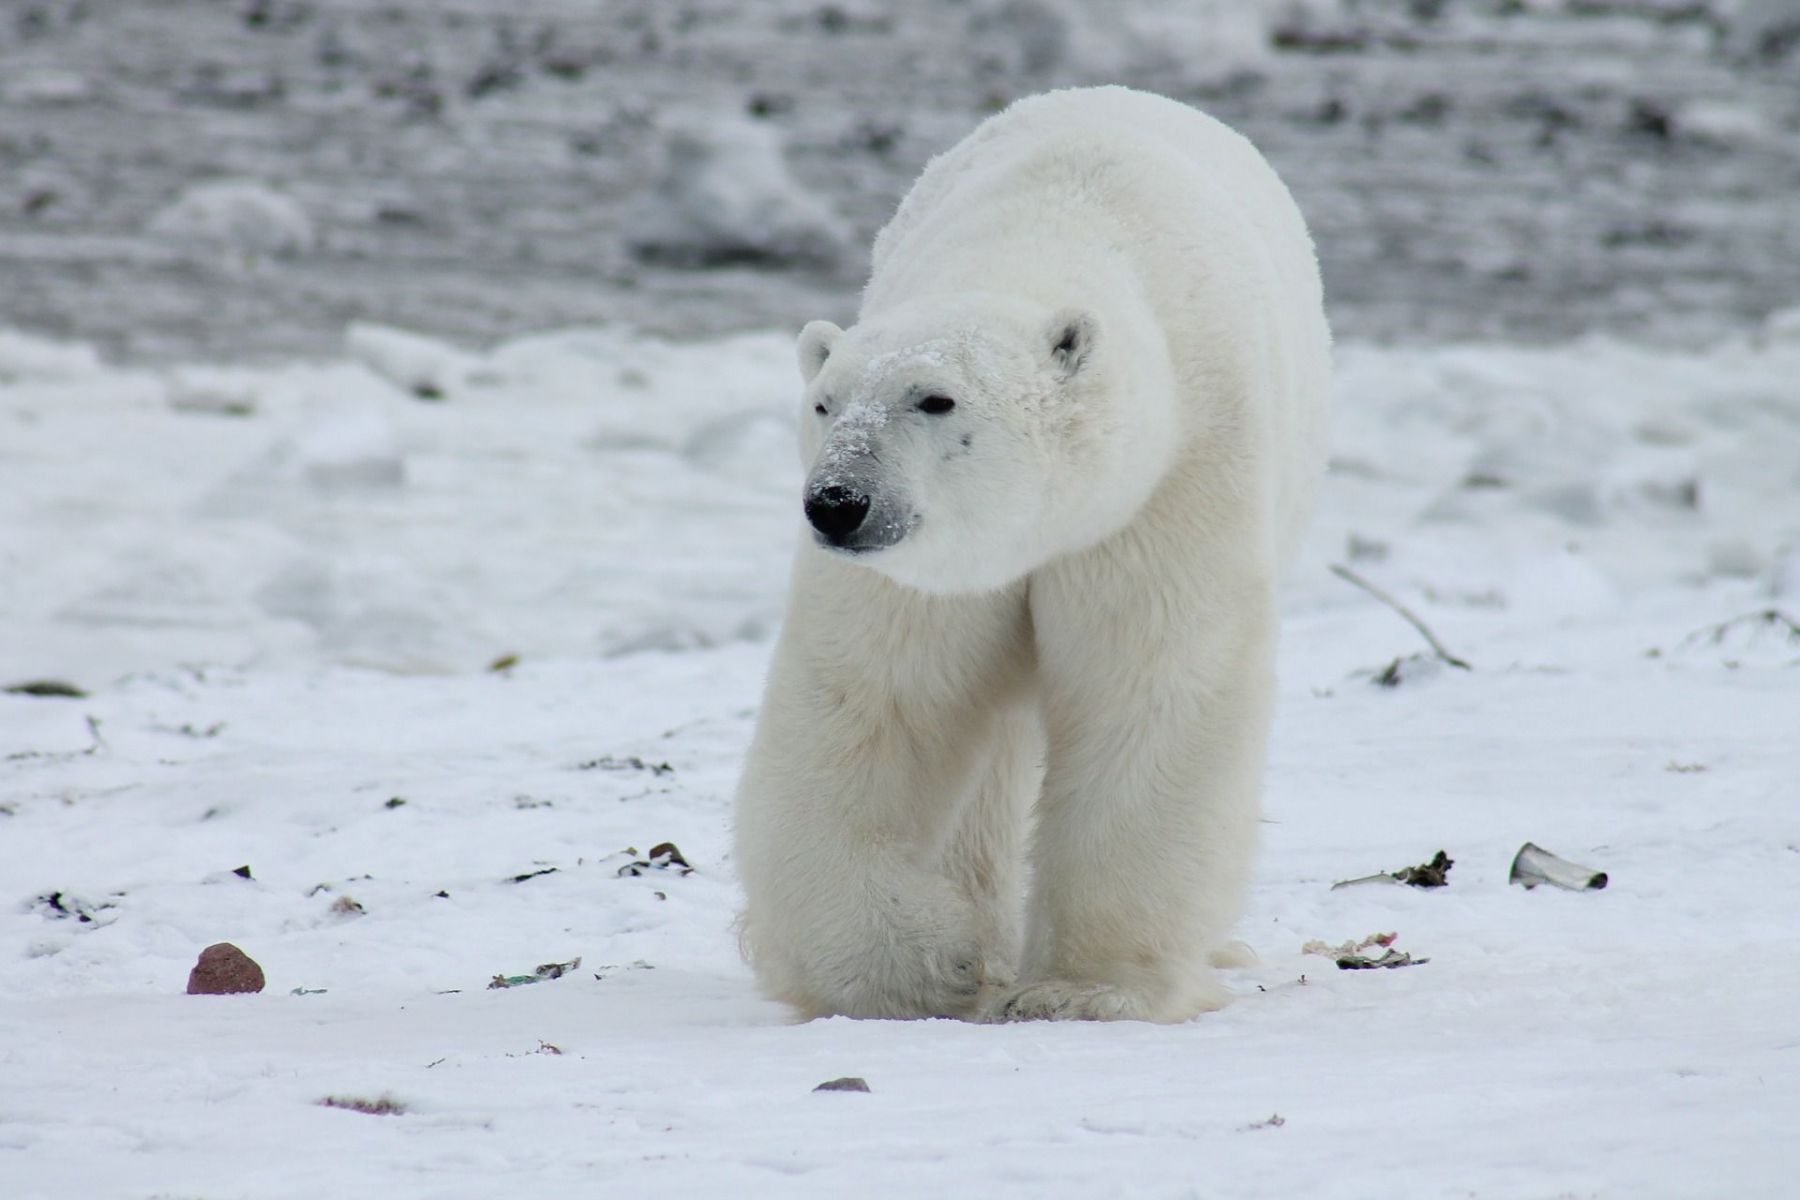 Polar bears have the ability to maintain their body temperatures at over 98 degrees F, even during very cold winter ...